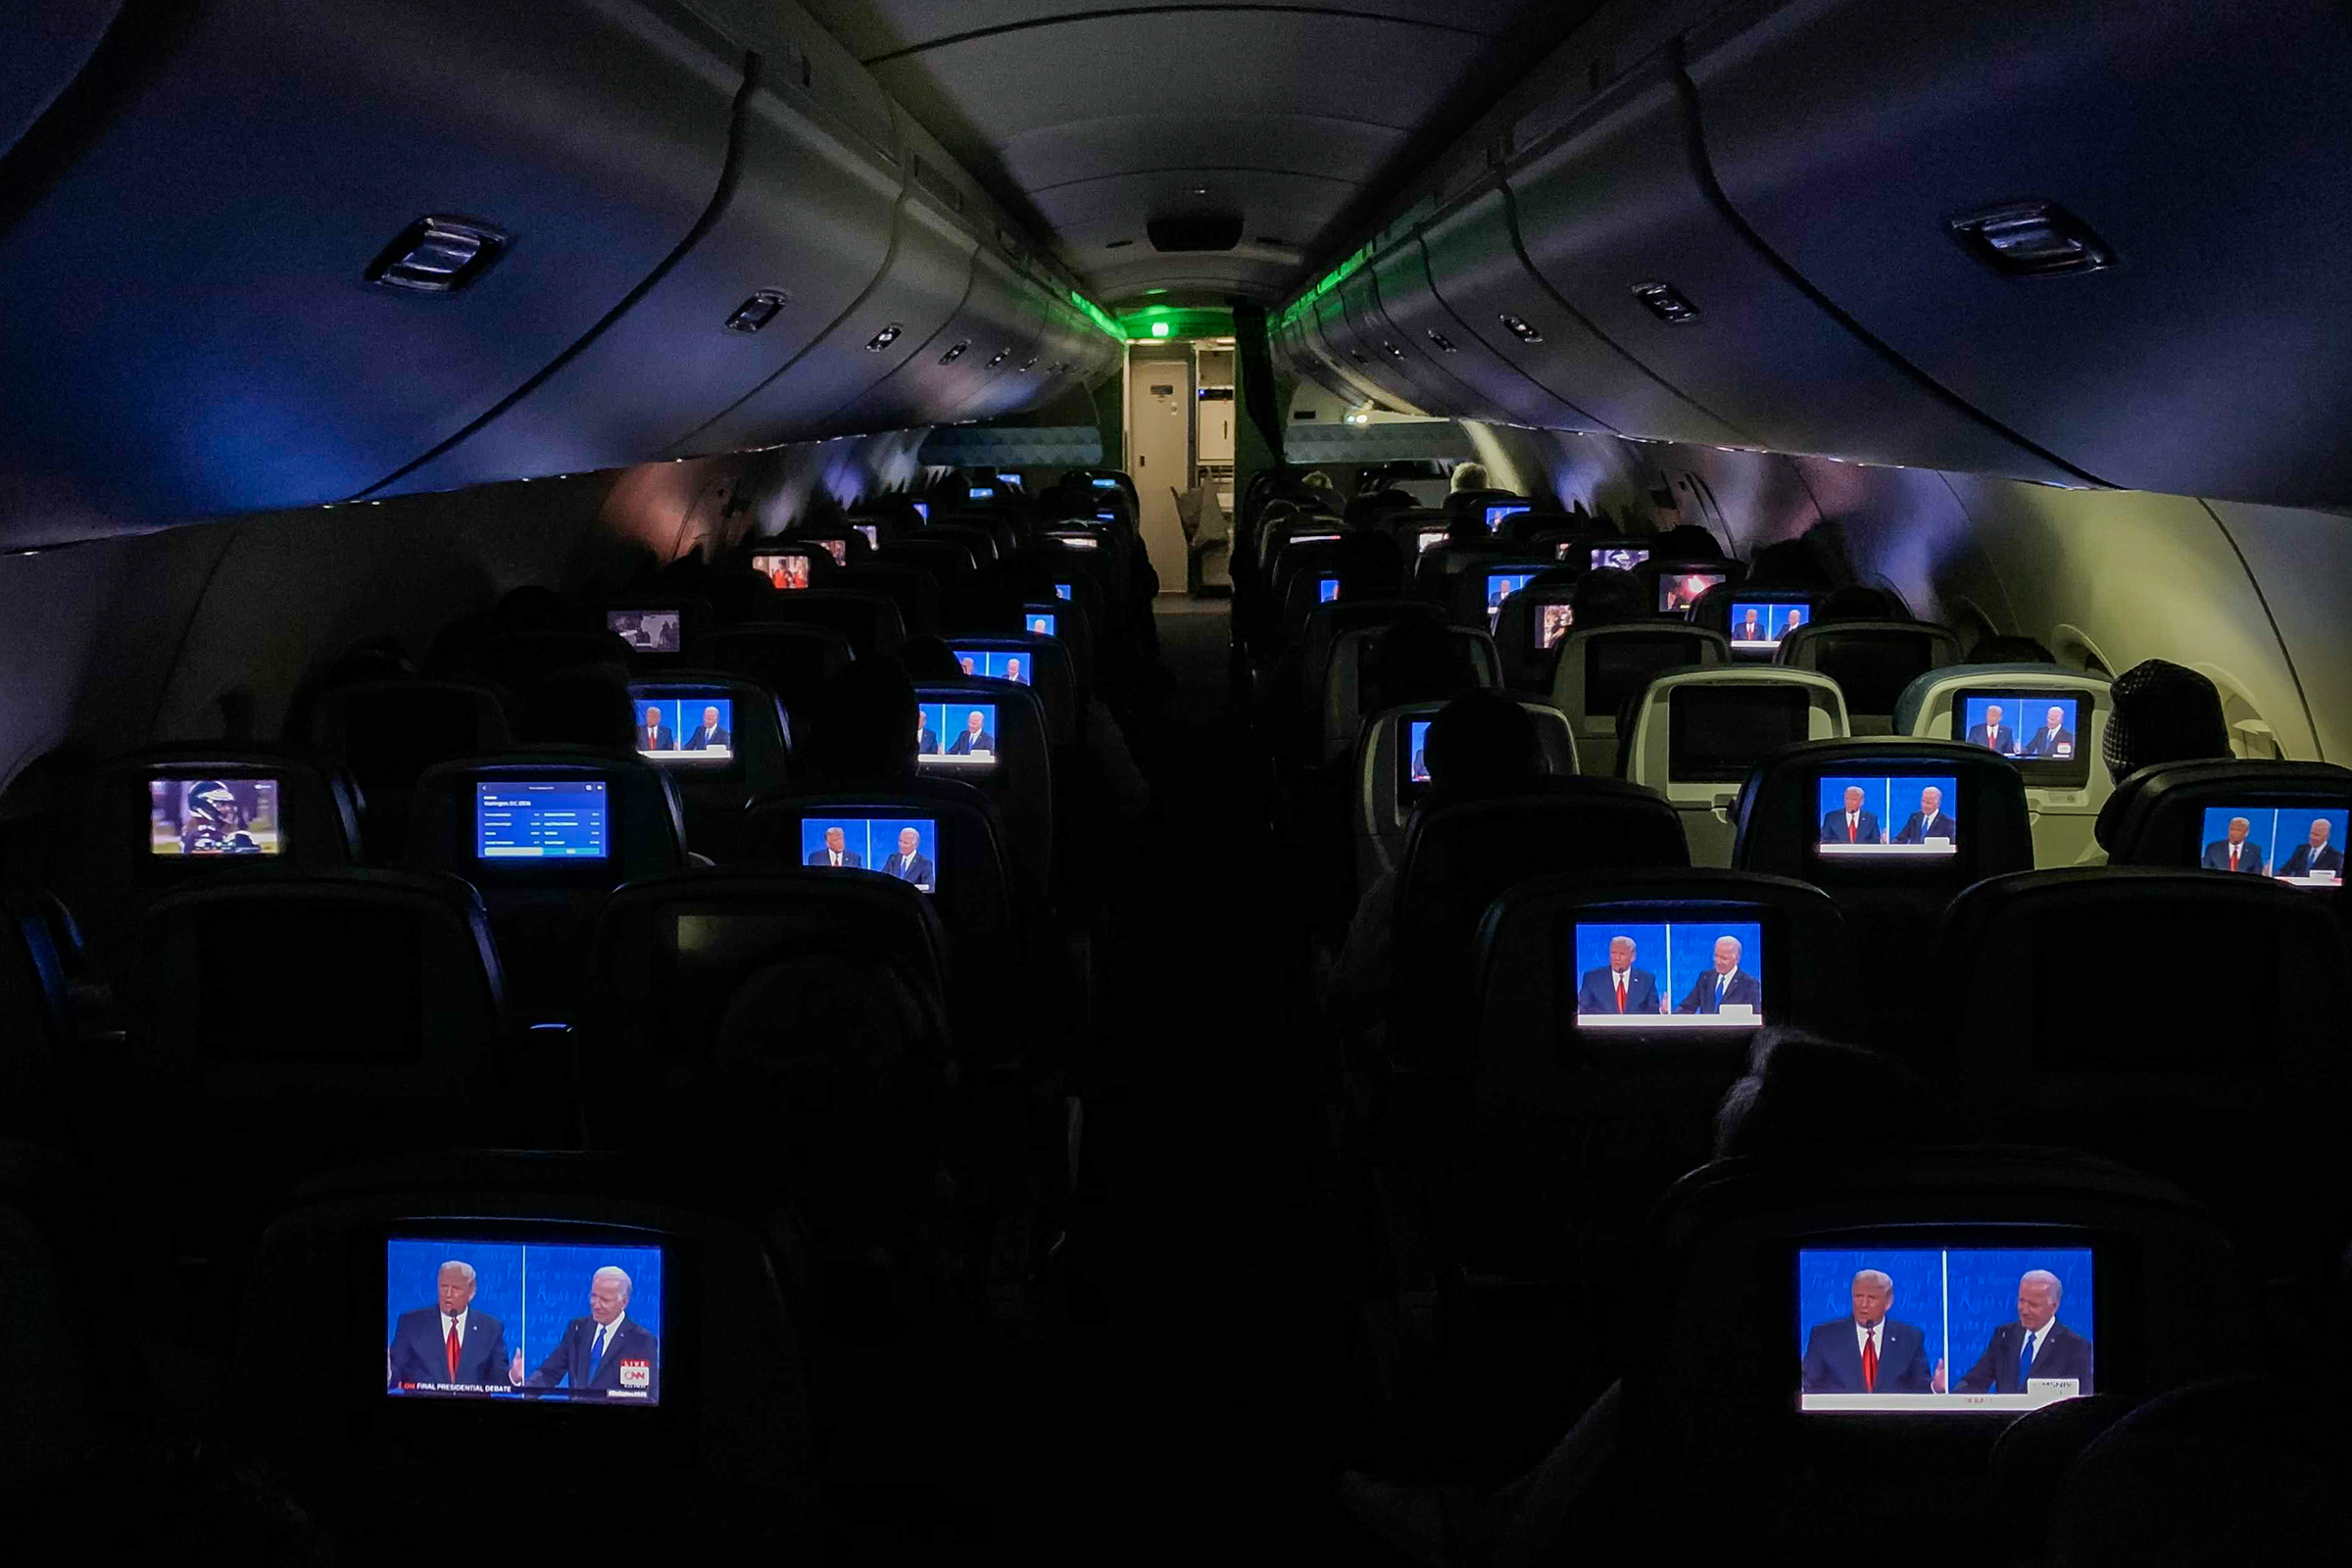 The final presidential debate between President Trump and Joe Biden appears on television screens during a flight from Detroit on Oct. 22, 2020.